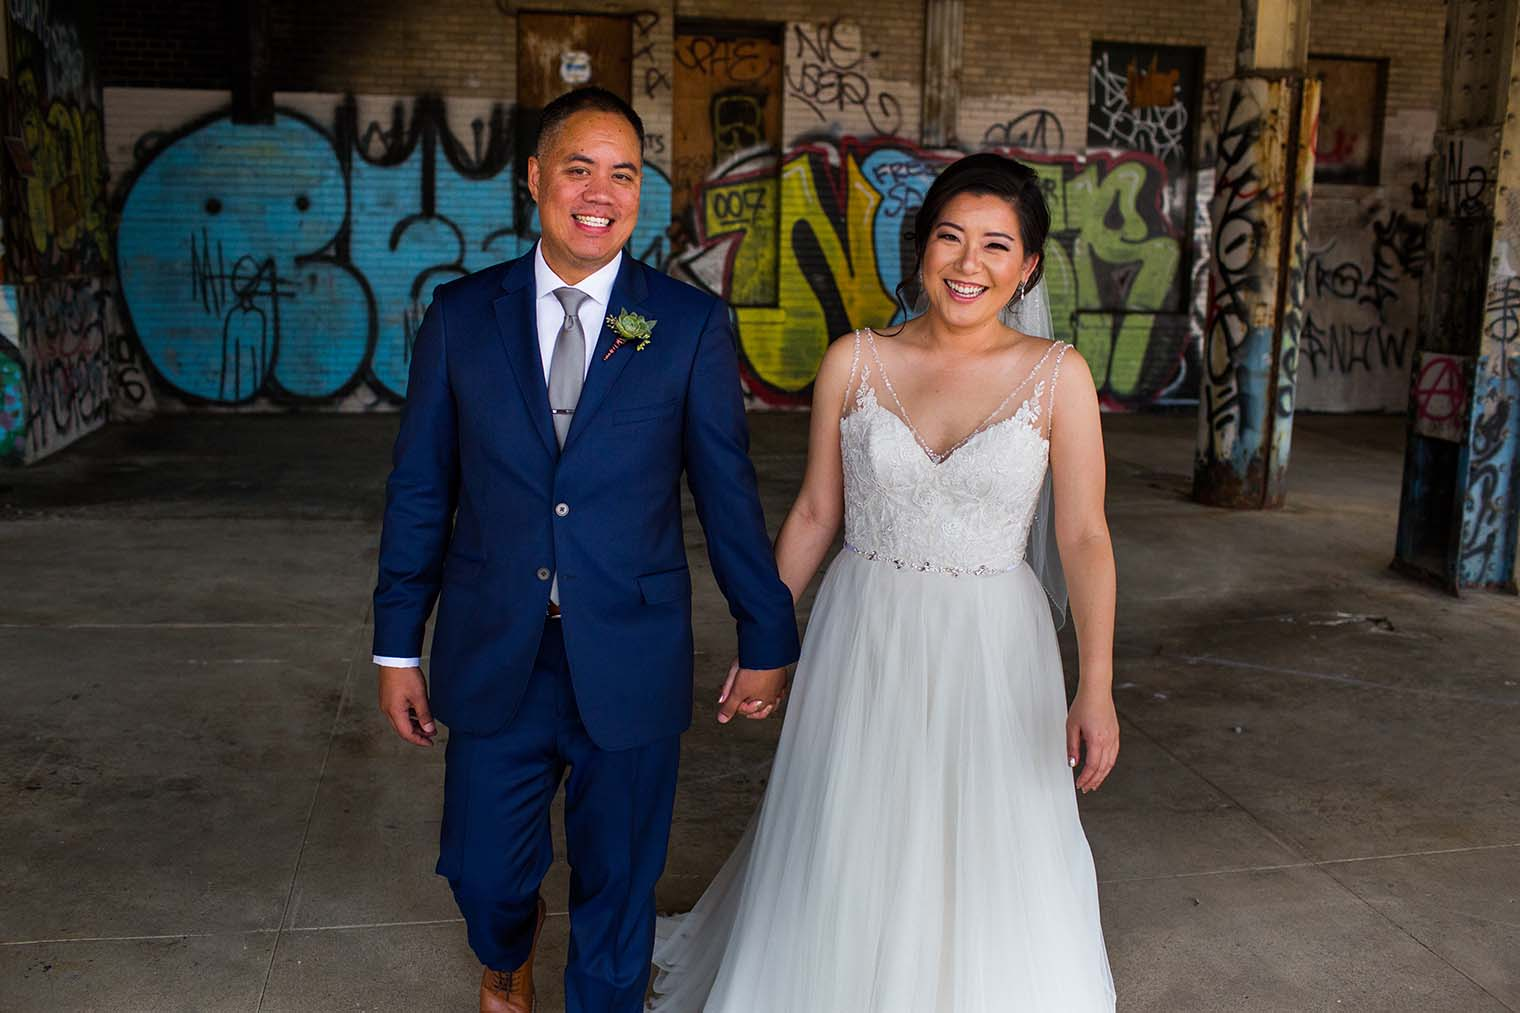 16th Street Station Wedding Couple Photos